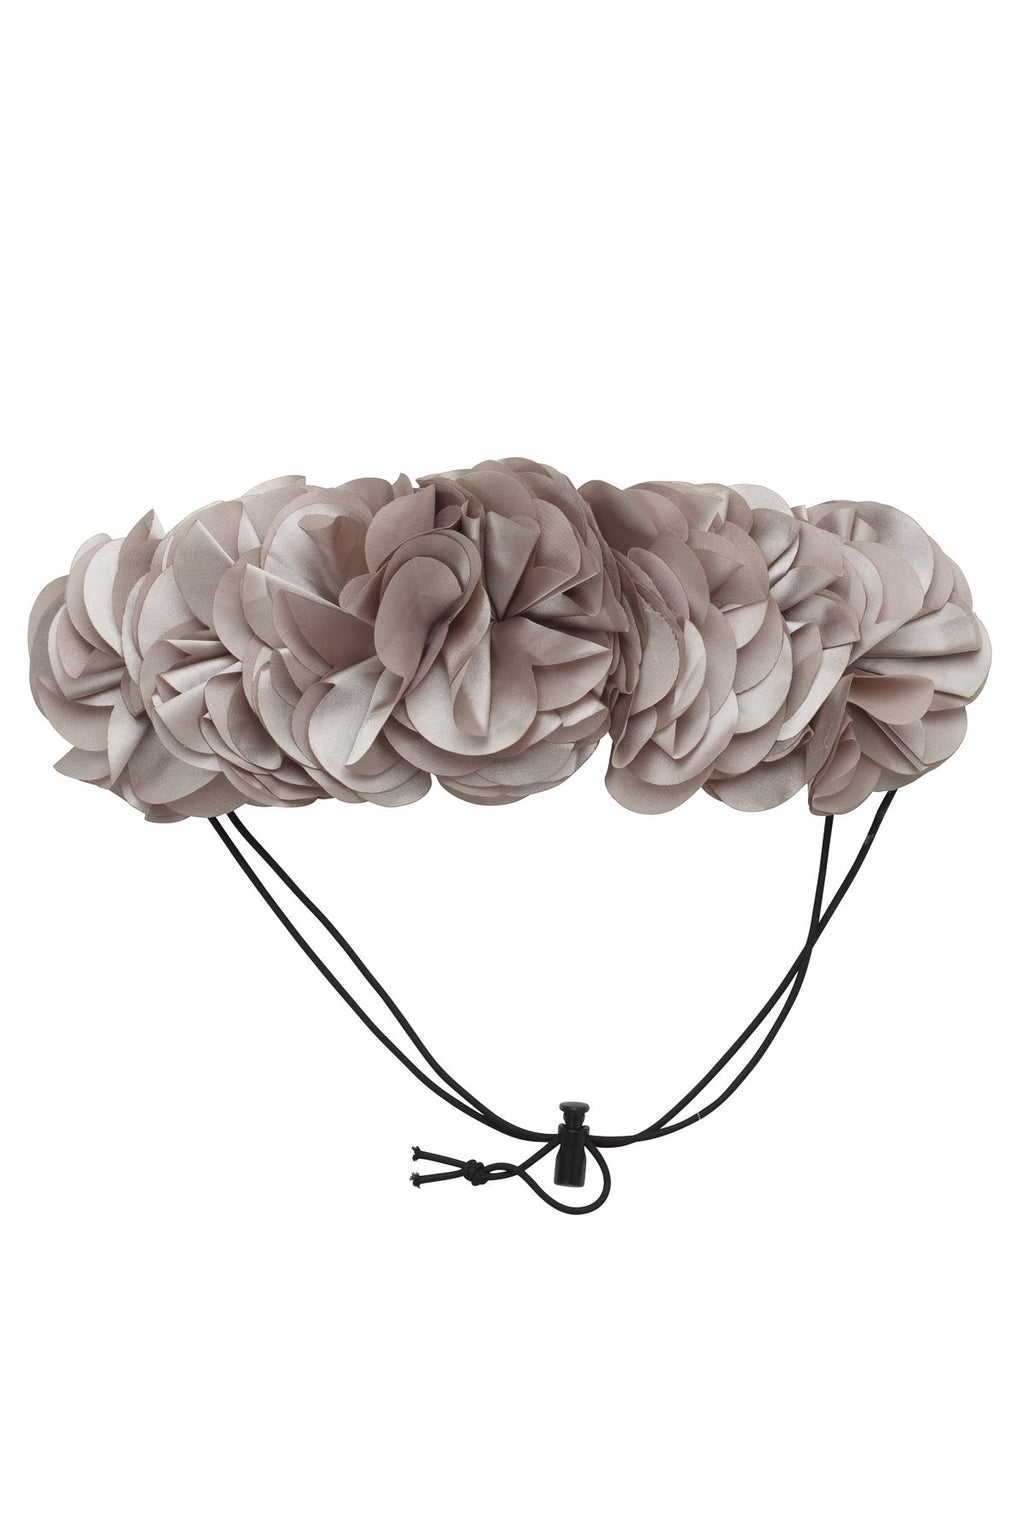 Floral Wreath Petit - Taupe Grey - PROJECT 6, modest fashion